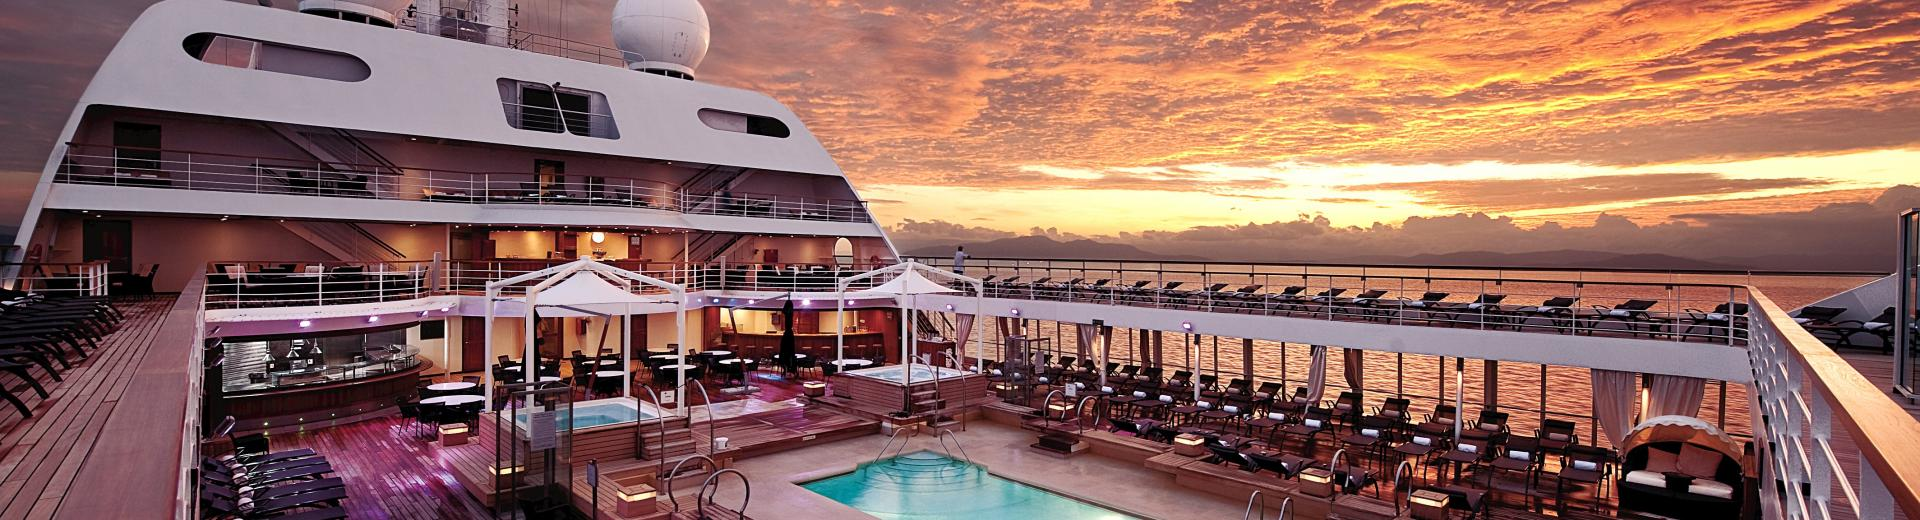 Onboard Seabourn